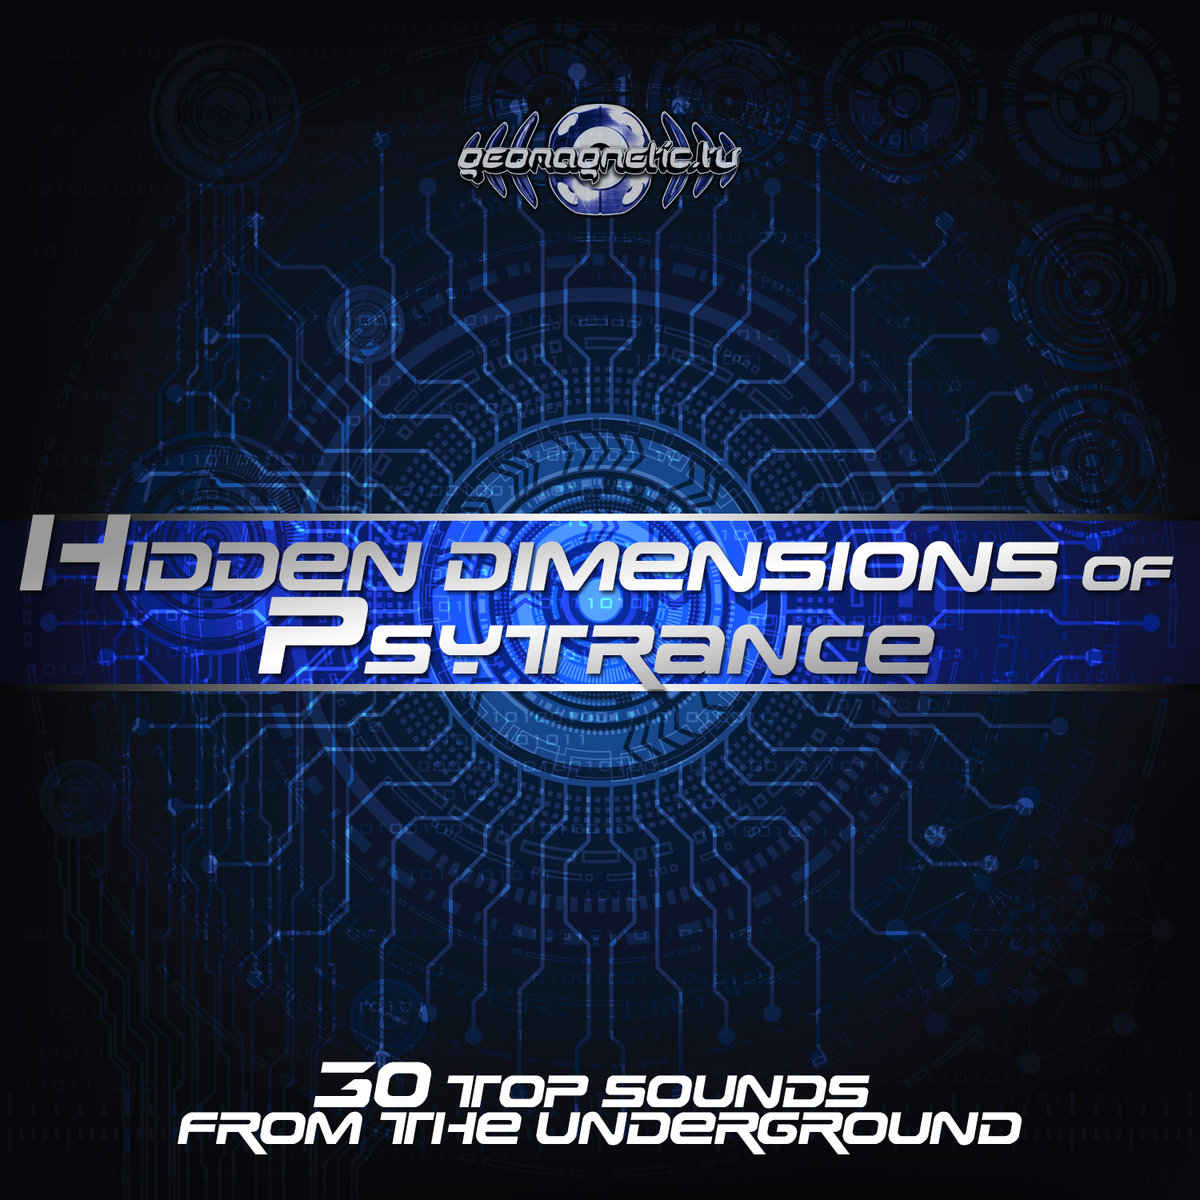 Midi Junkies & Atil Aykaya - Afgan @ 'Various Artists - Hidden Dimensions of Psytrance (30 Top Sounds From The Underground)' album (electronic, goa)